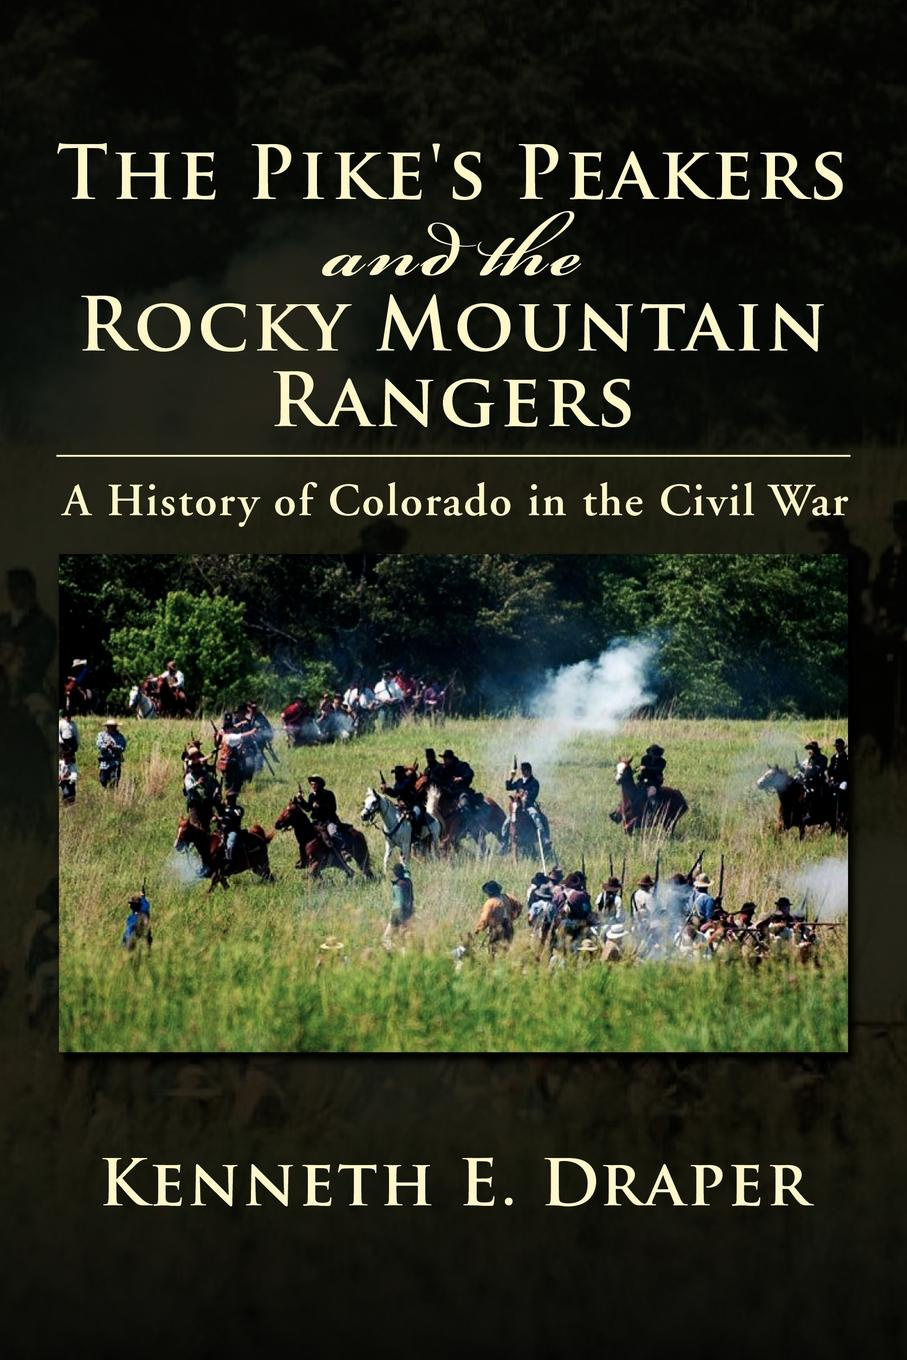 Kenneth E. Draper The Pike's Peakers and the Rocky Mountain Rangers. A History of Colorado in the Civil War cindi myers rocky mountain rescue